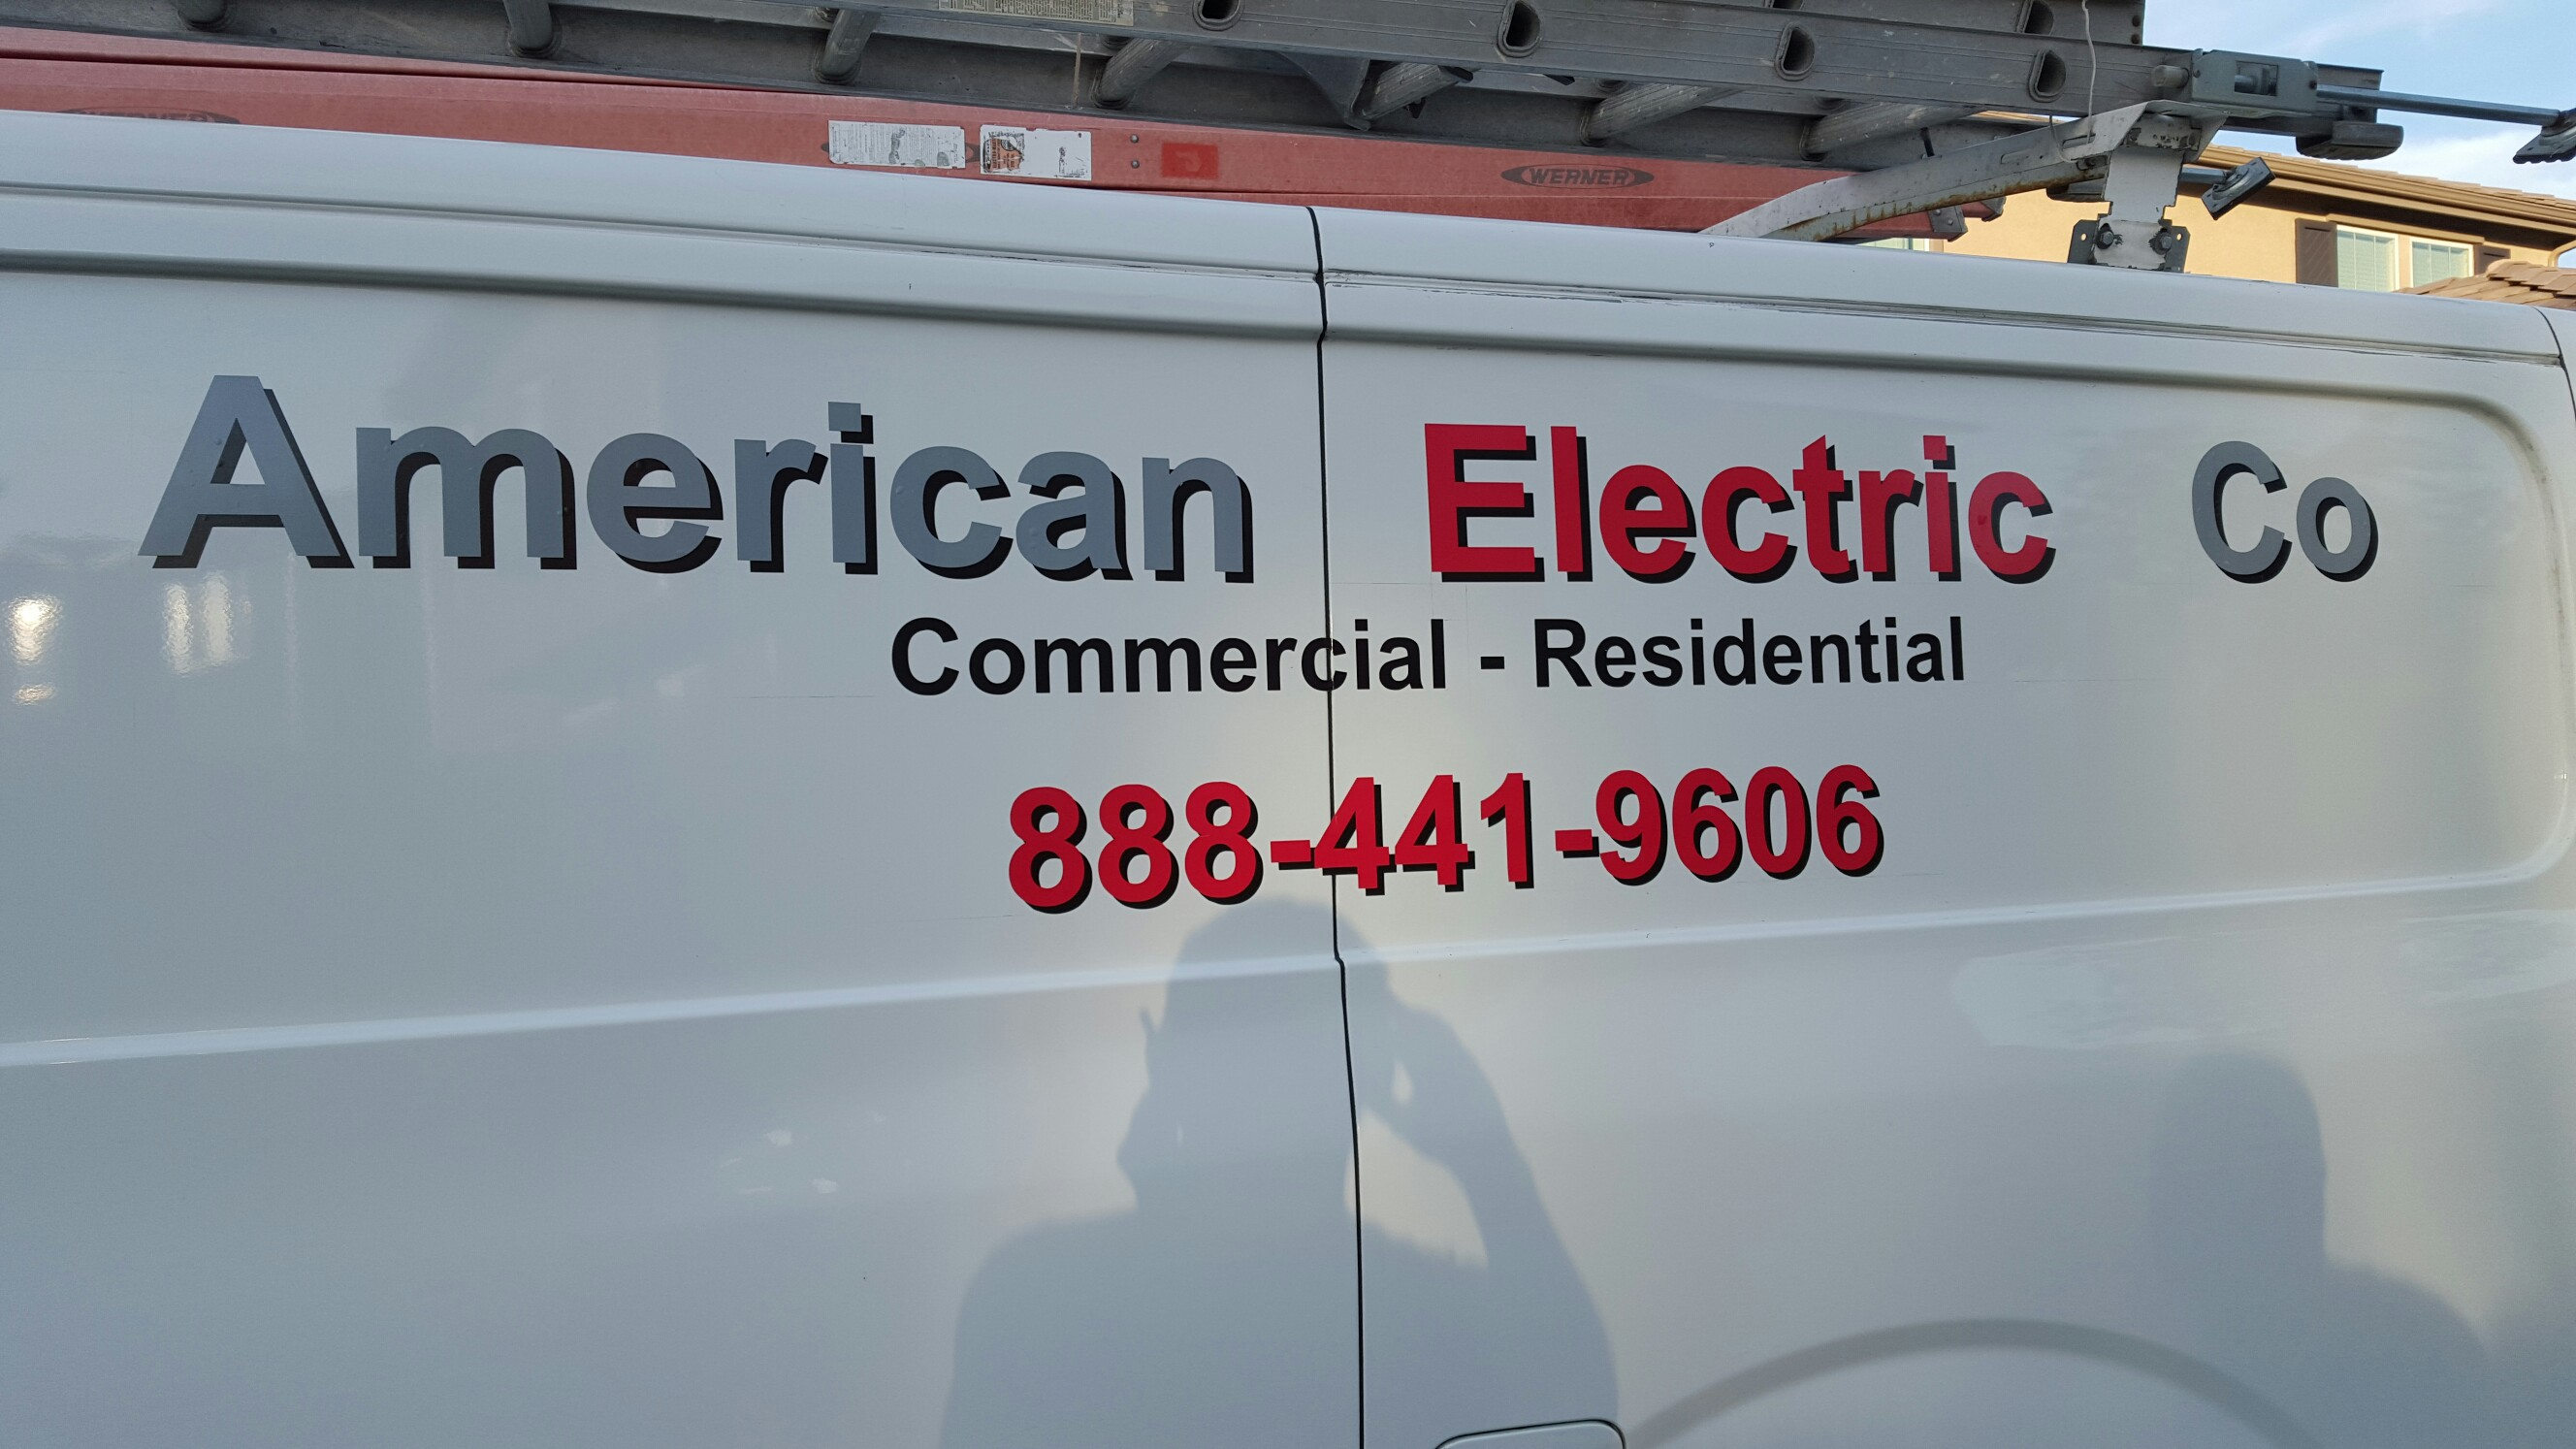 American Electric Company Inc Newhall Ca 91321 Yp Com